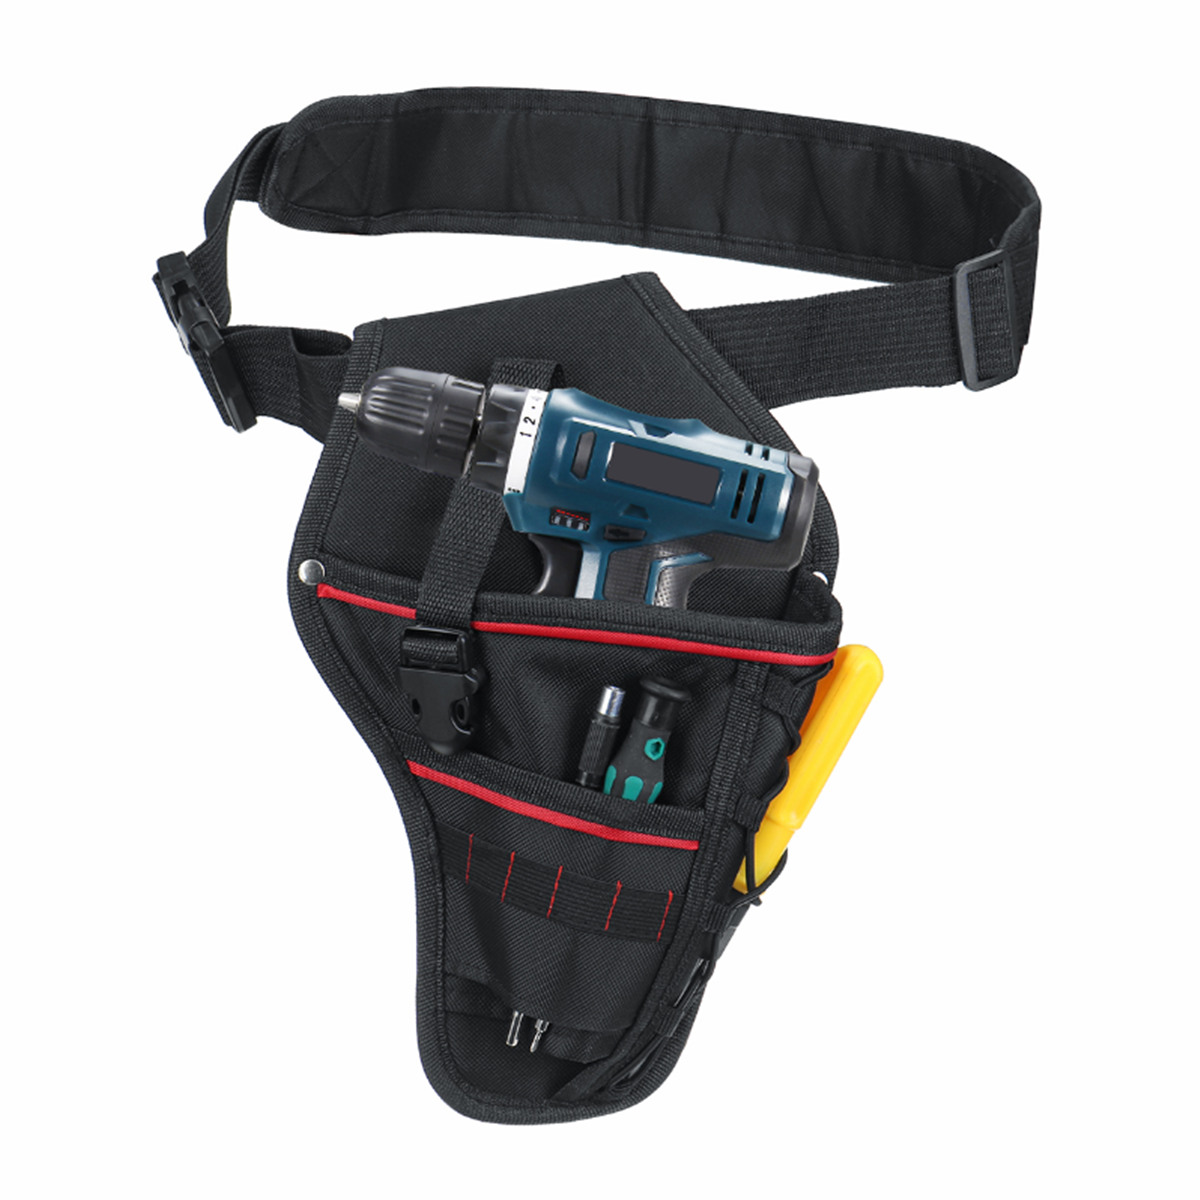 Multi-functional Drill Waist Tool Bag Electrician Waist Tool Pouch Storage Bag For Wrench Hammer Screwdriver Cordless Drill